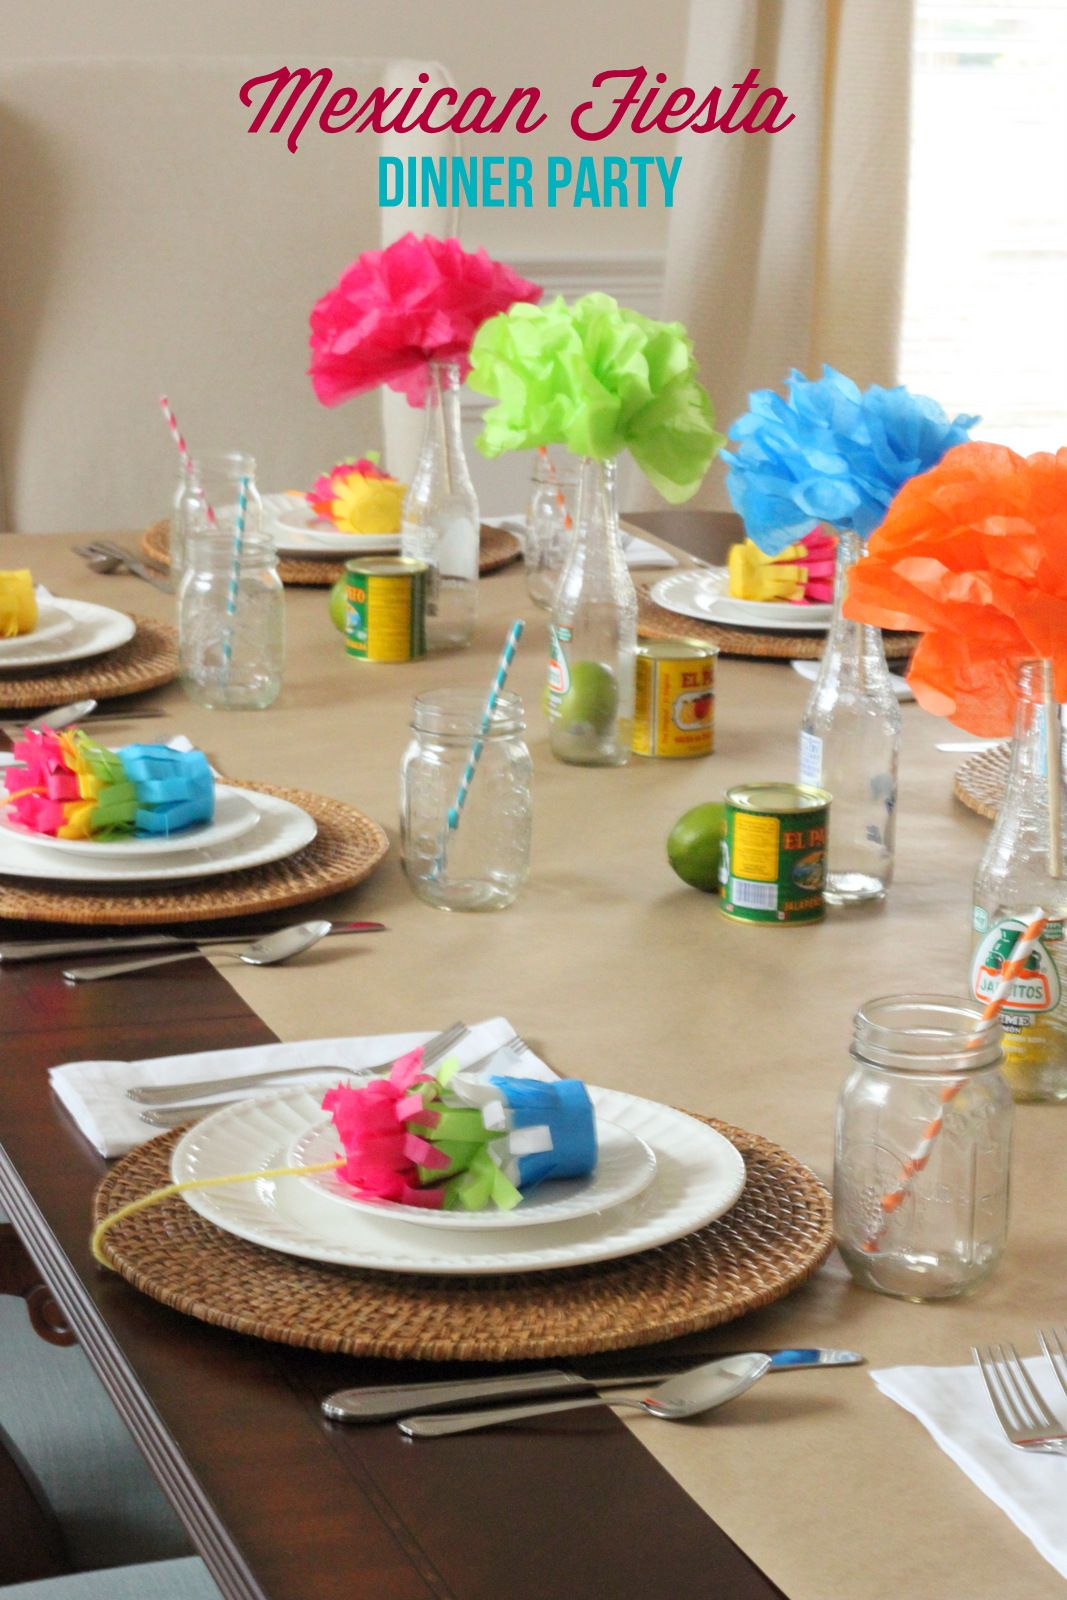 dinner party ideas} - mexican fiesta party | party ideas | mexican